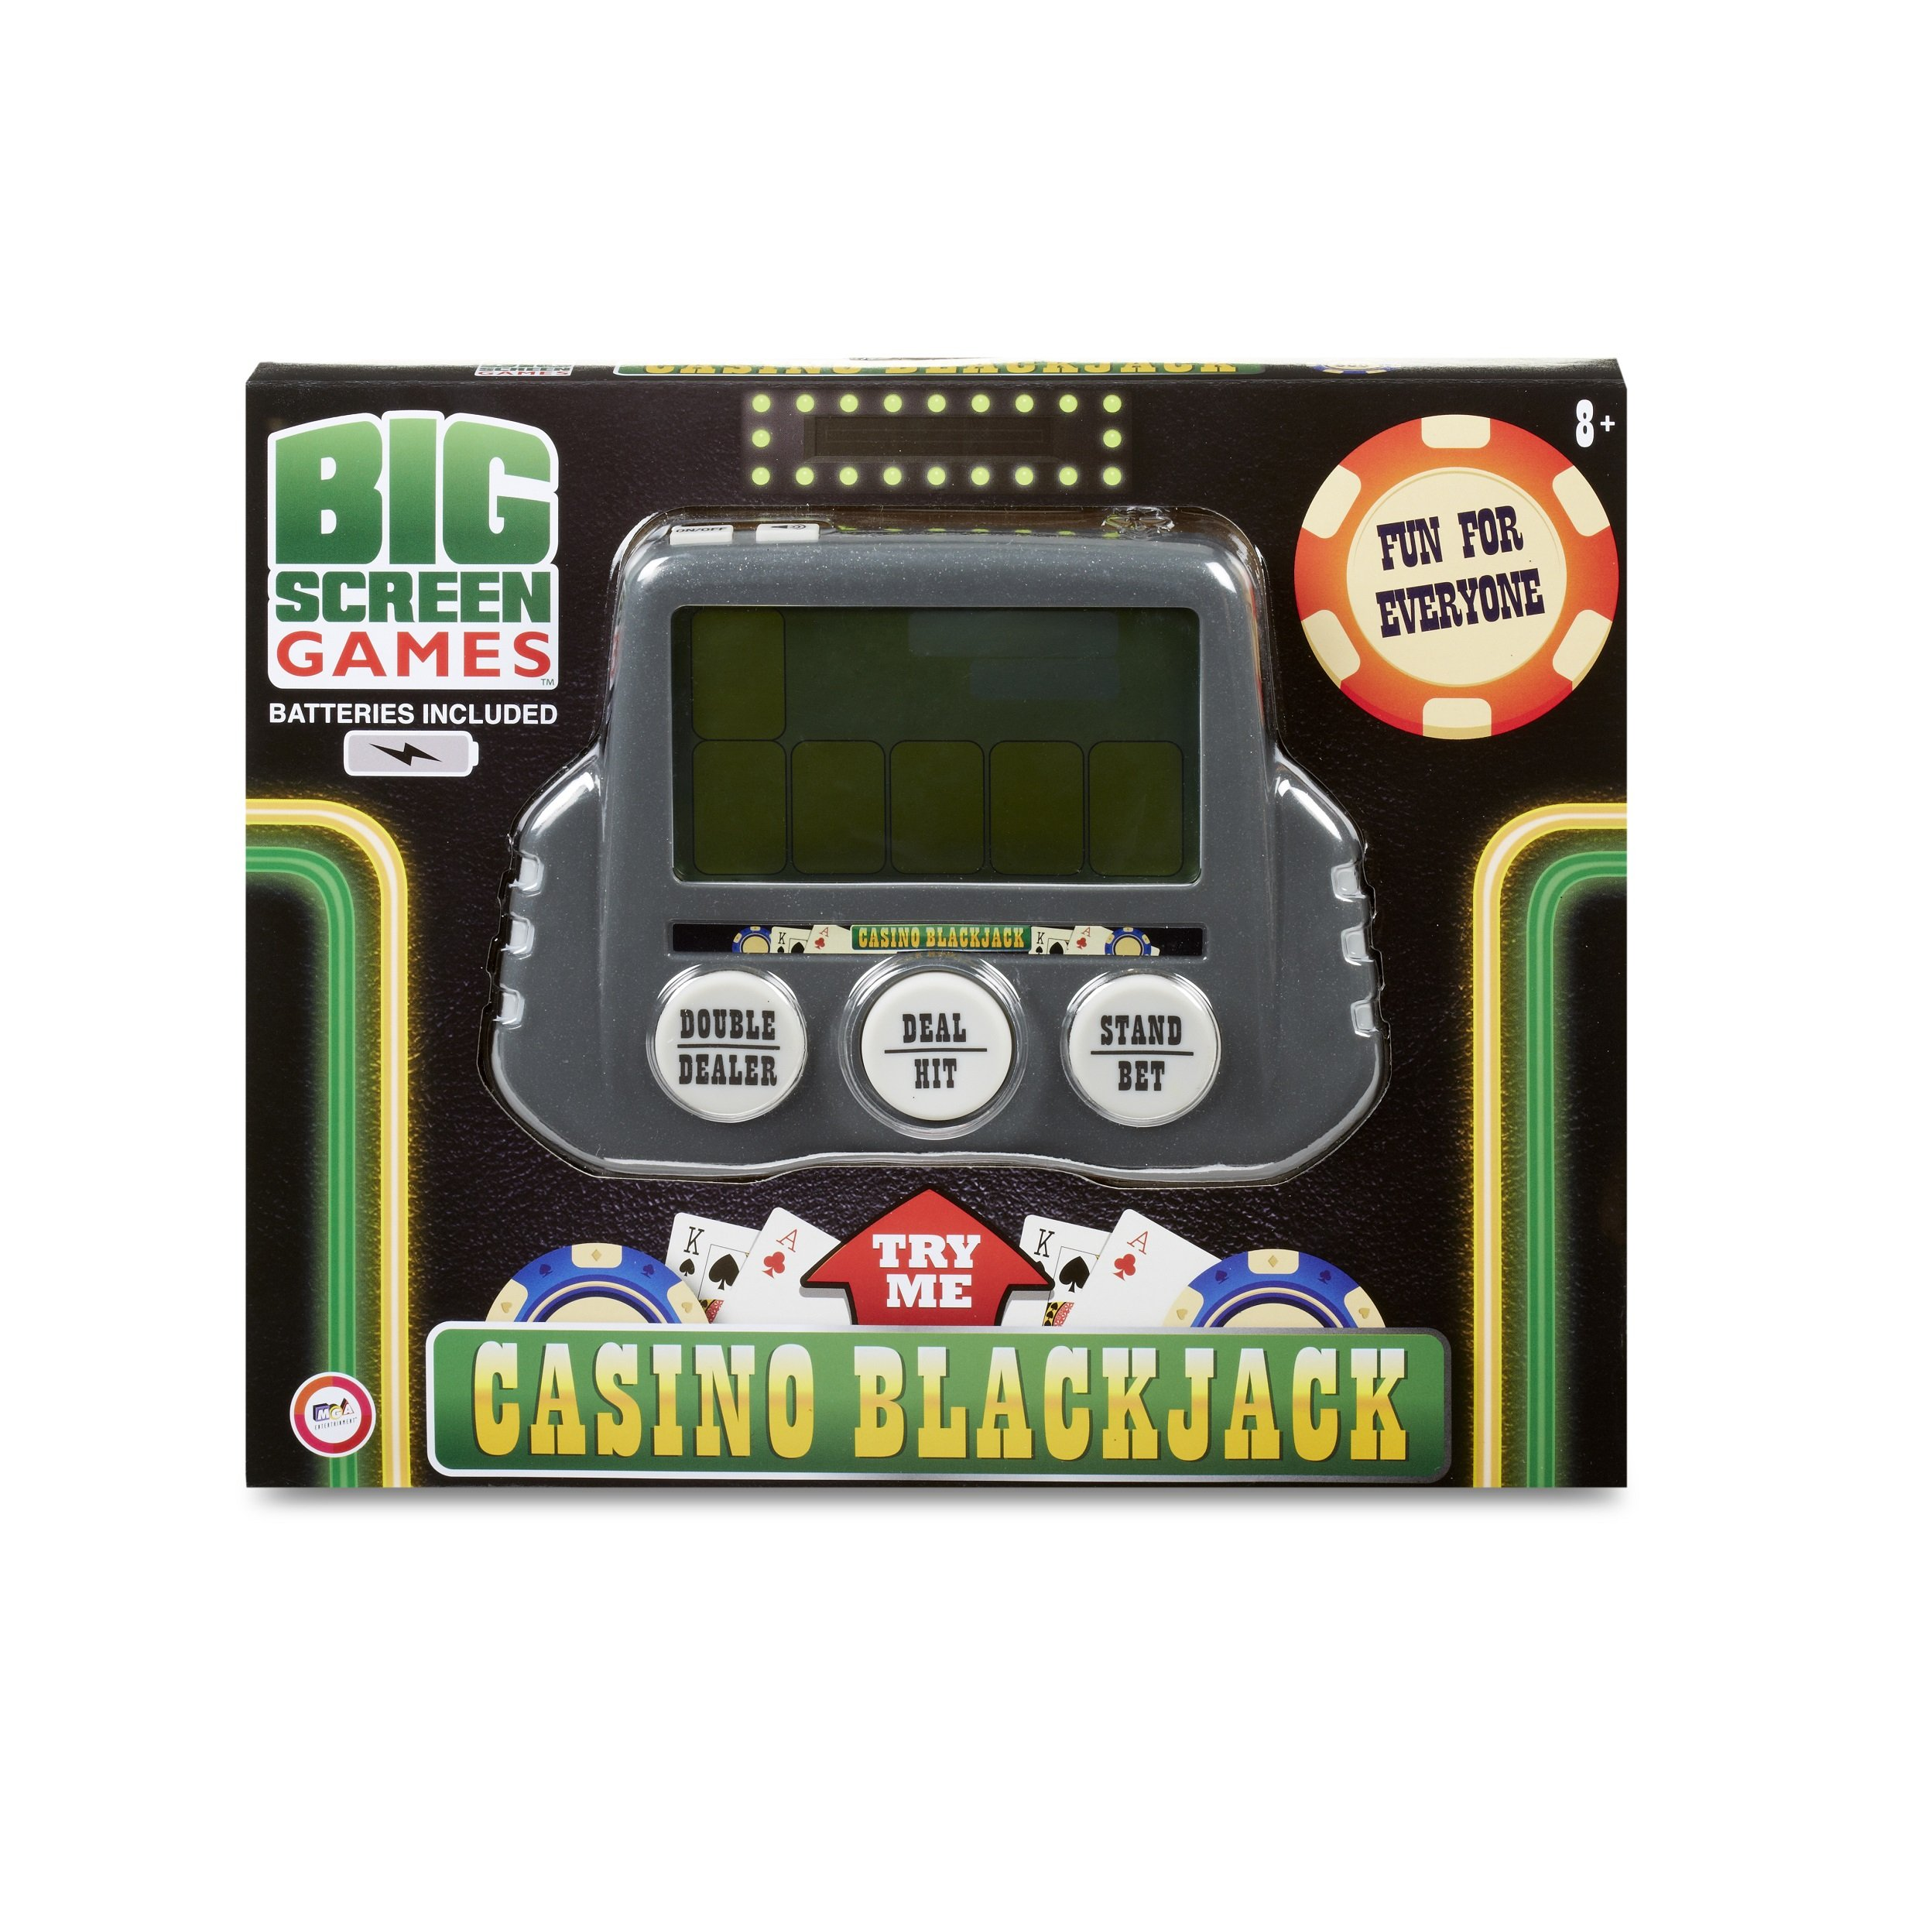 Big Screen Games - Casino Black Jack by Big Screen Games